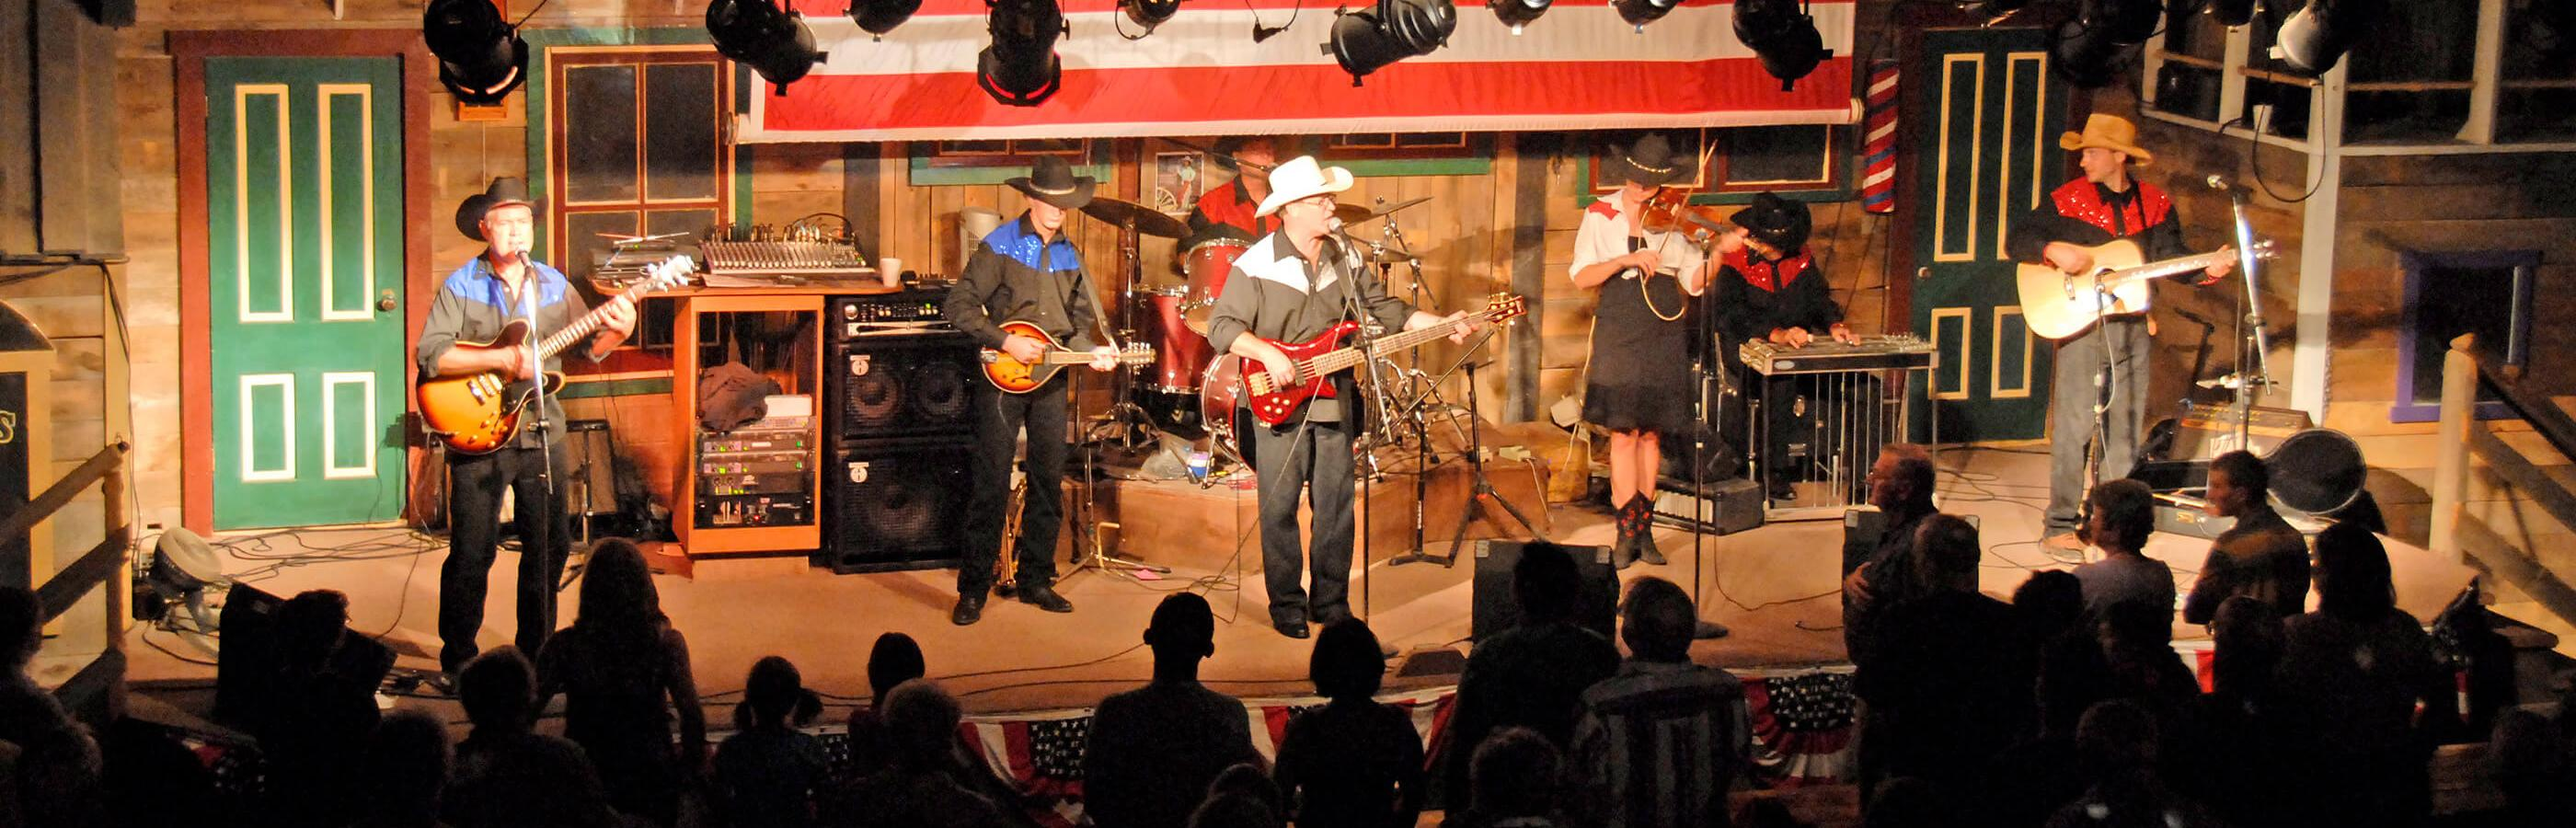 Live Performance At The Chuckwagon Dinner Show